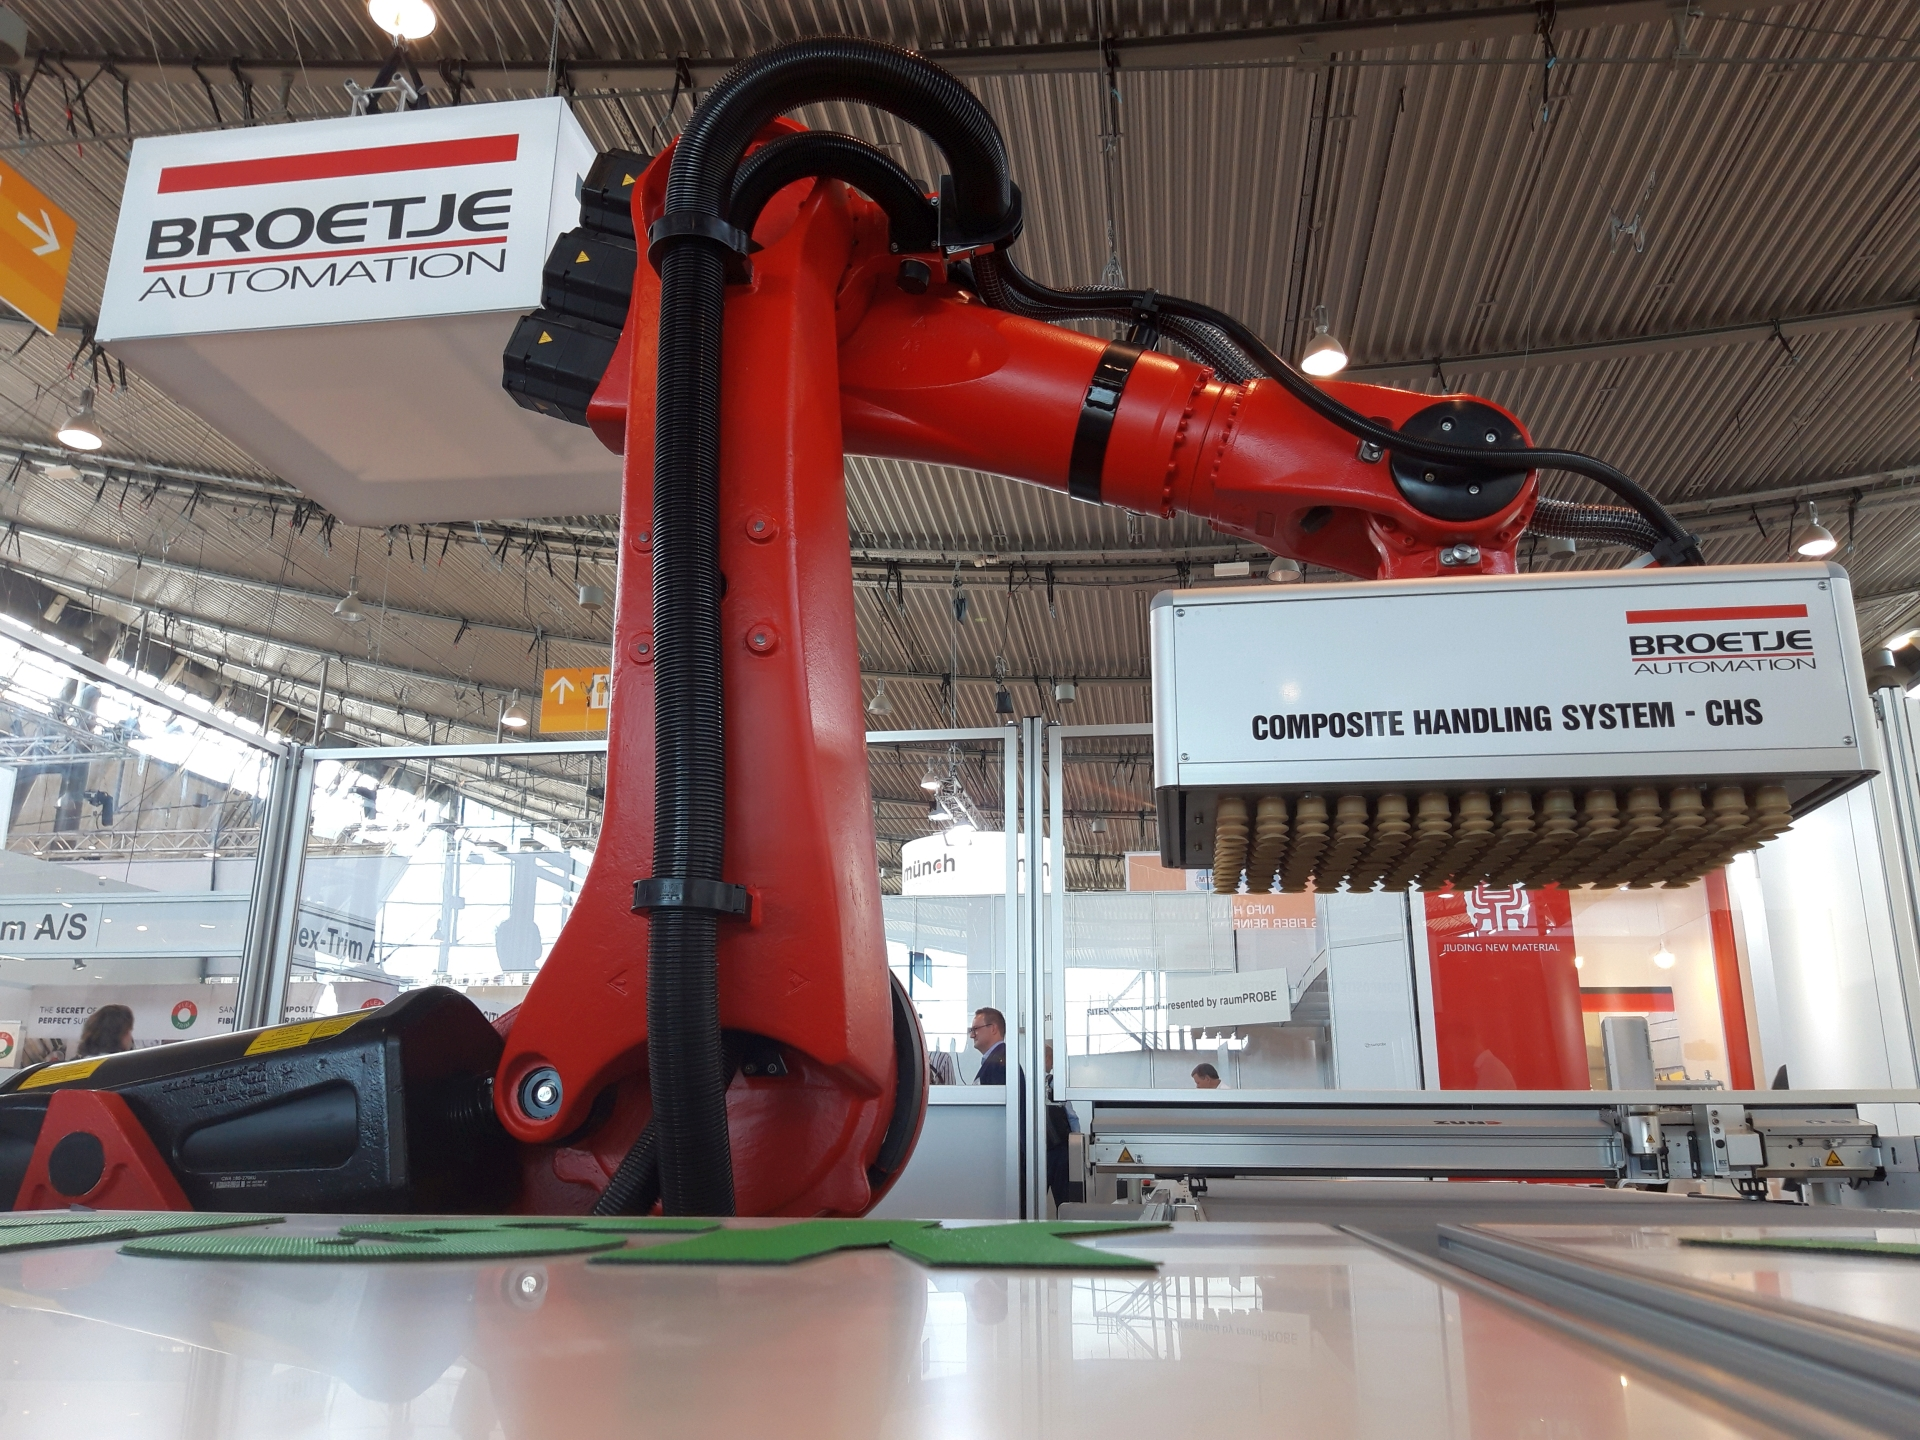 The Composite Handling System - CHS from Broetje-Automation is the heart of the Automated Sorting and Kitting solution. Photo: Broetje-Automation GmbH